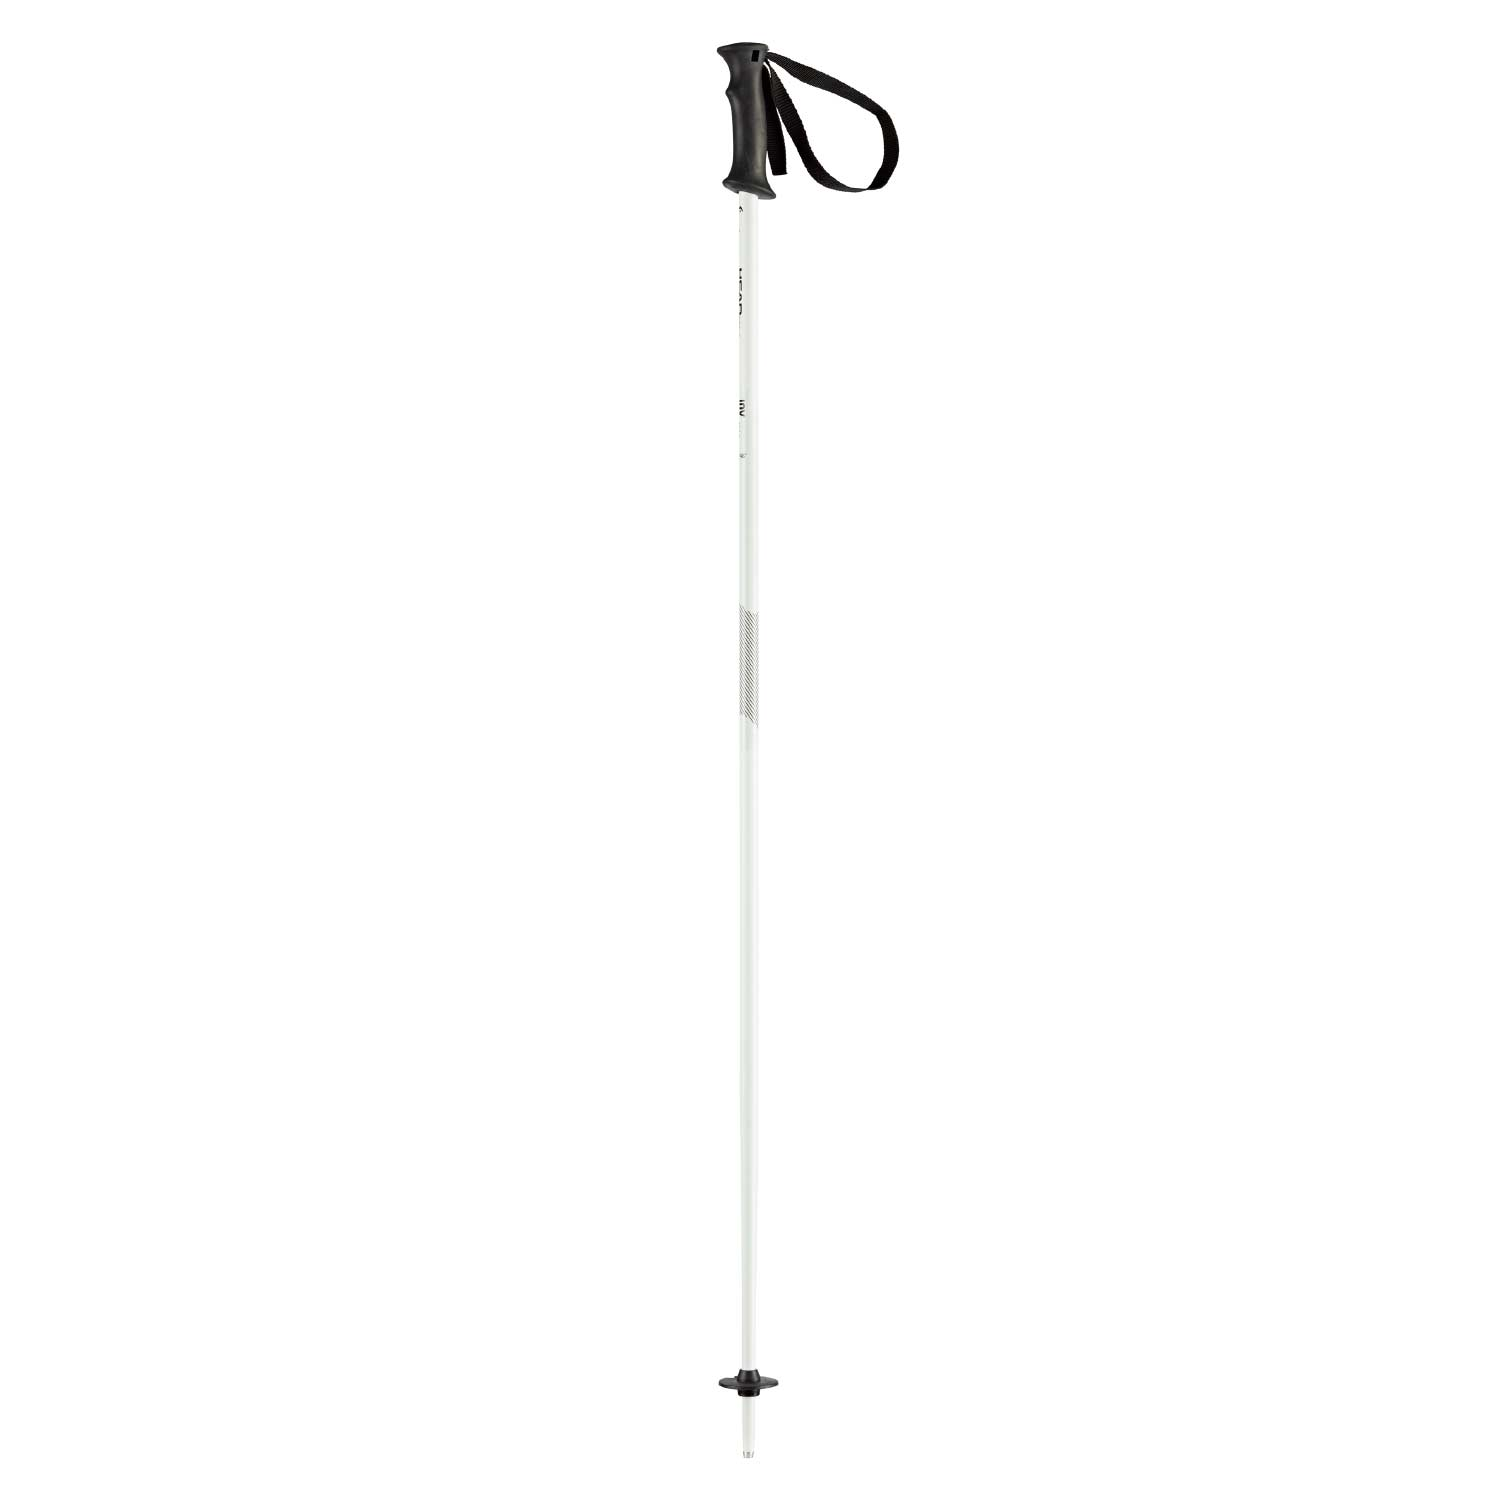 Head Joy Ski Pole White 2020